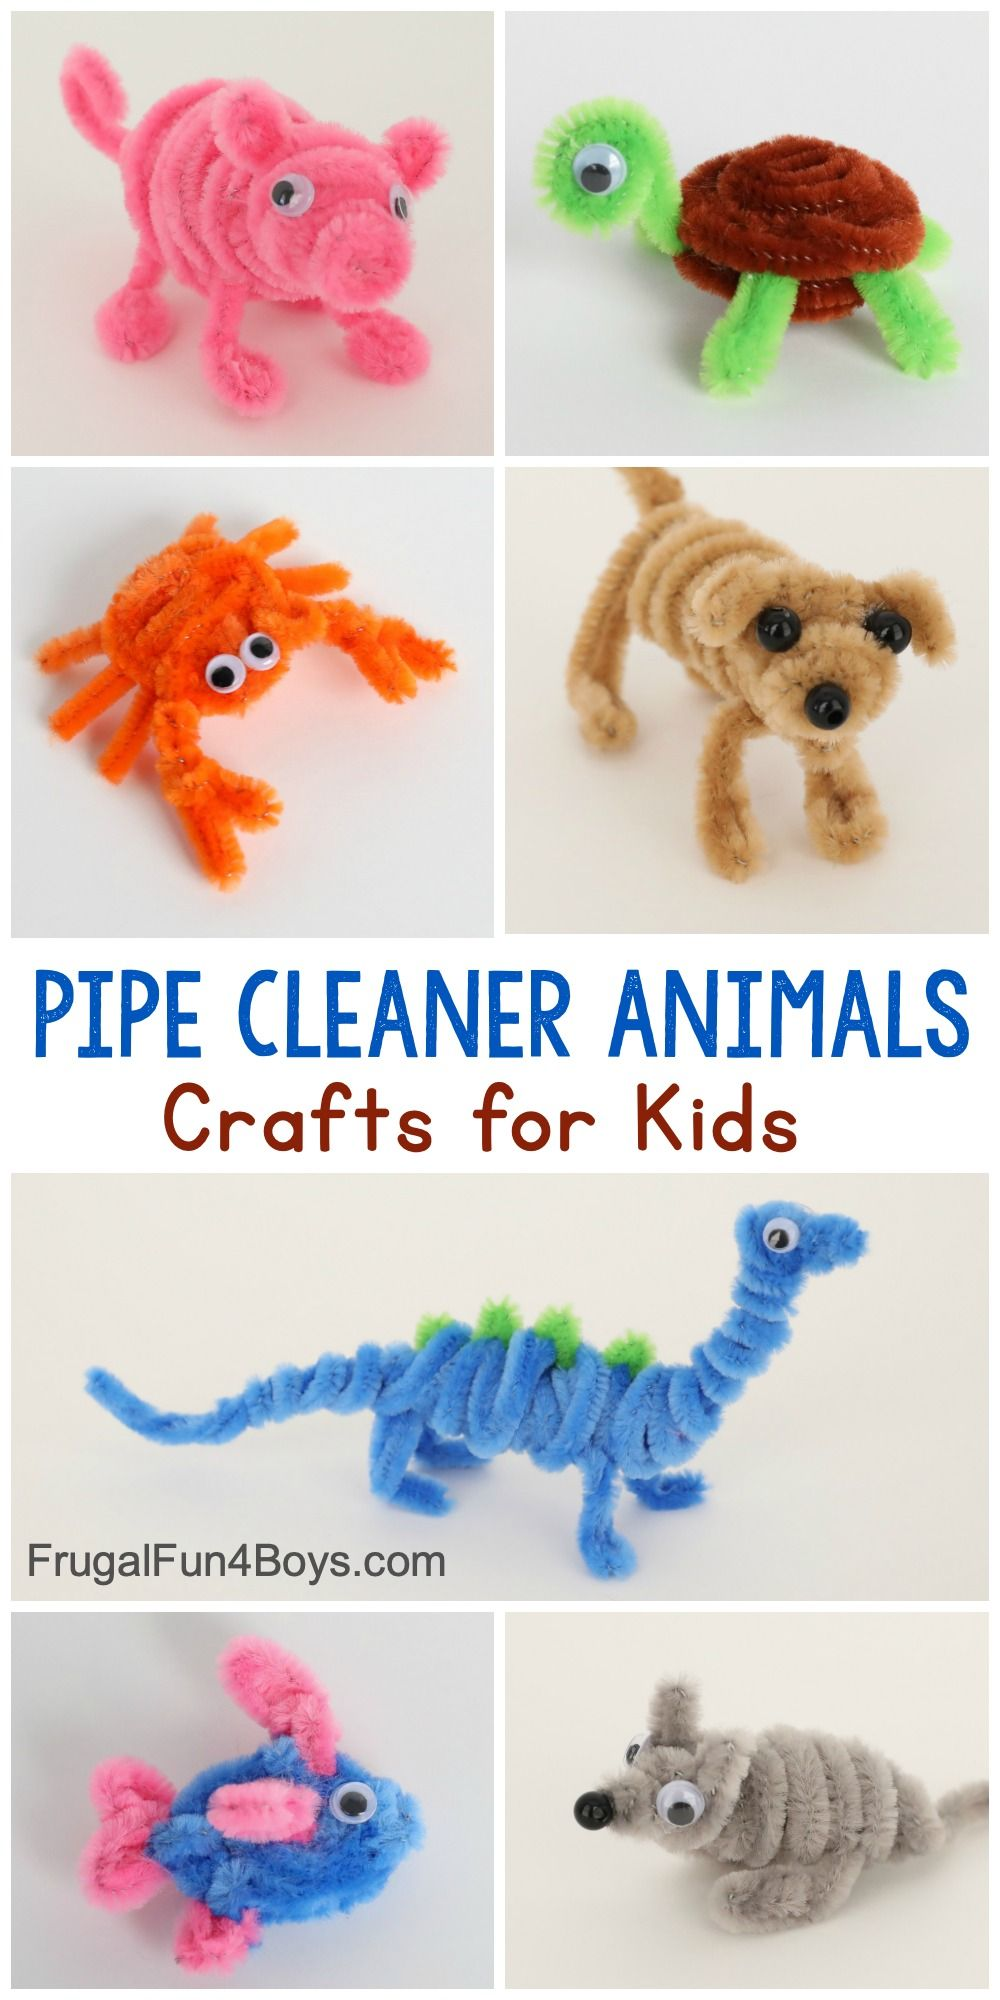 Pipe Cleaner Crafts: Things for Kids to Make & Do